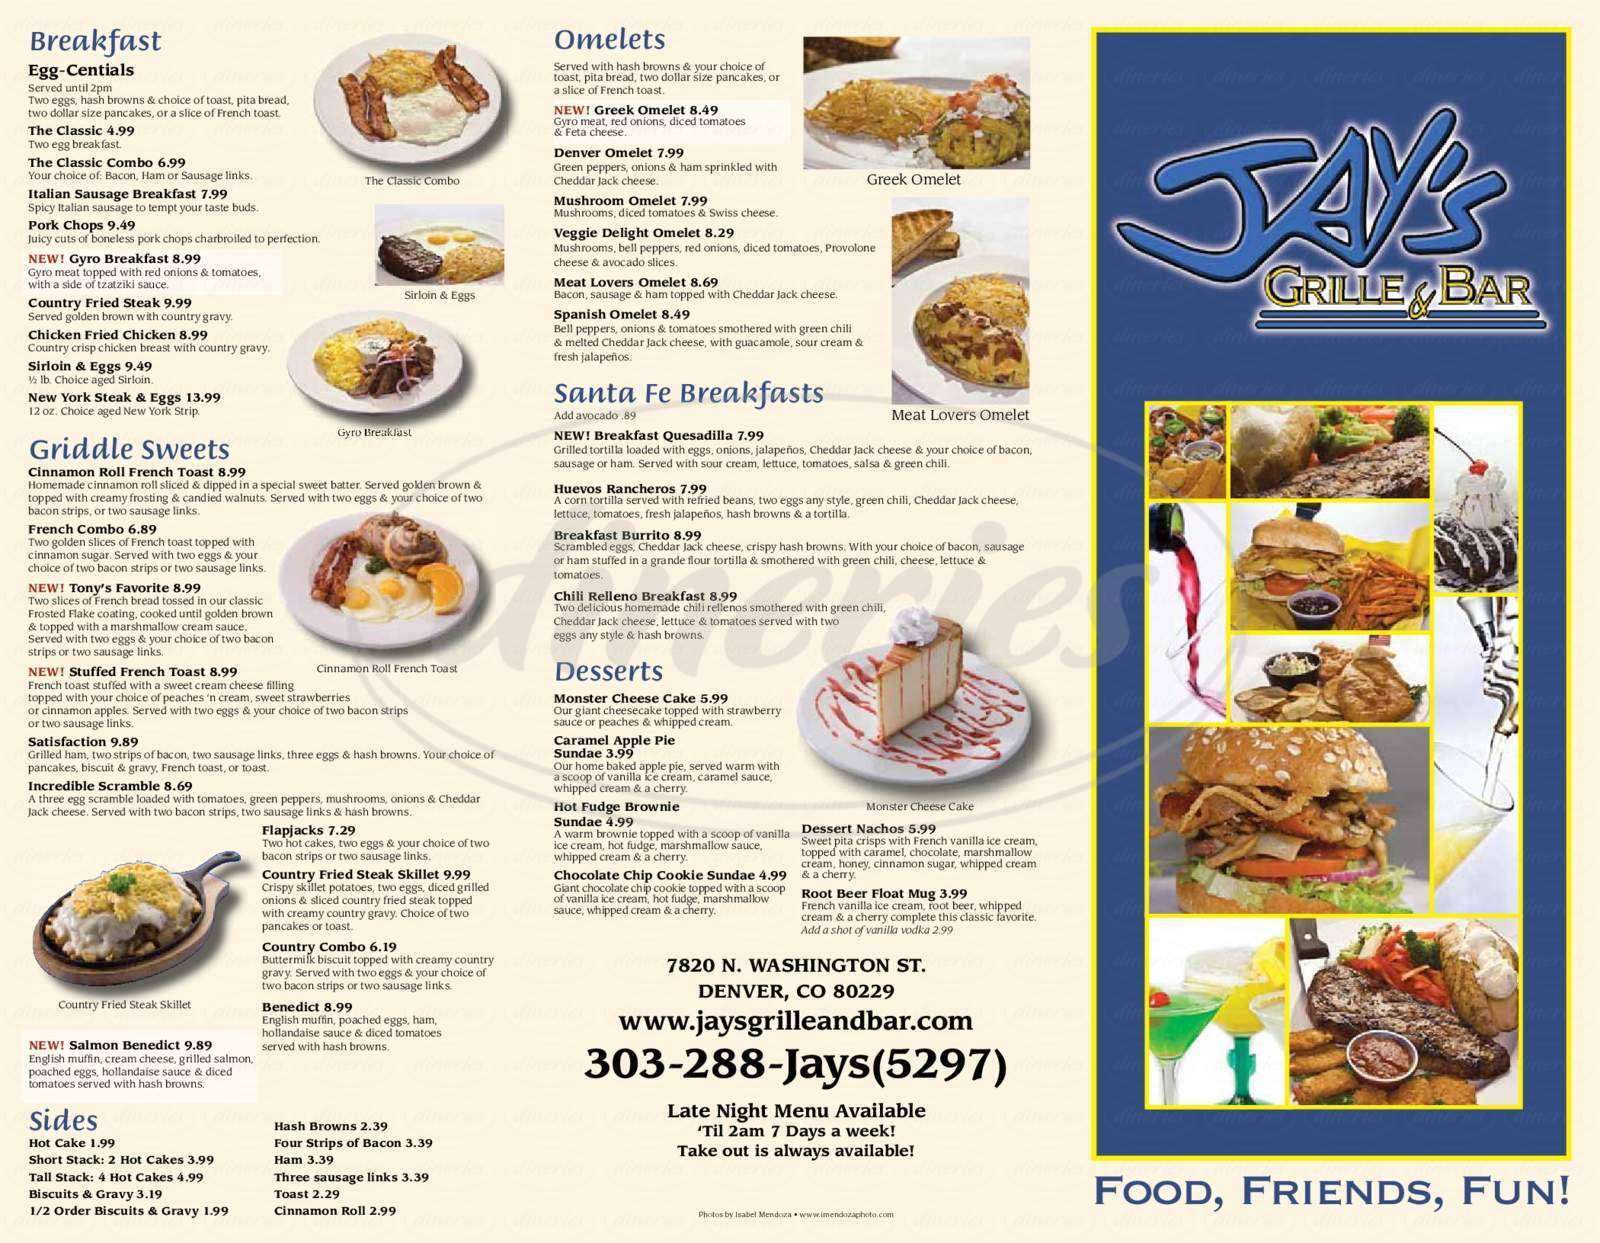 menu for Jay's Grille & Bar